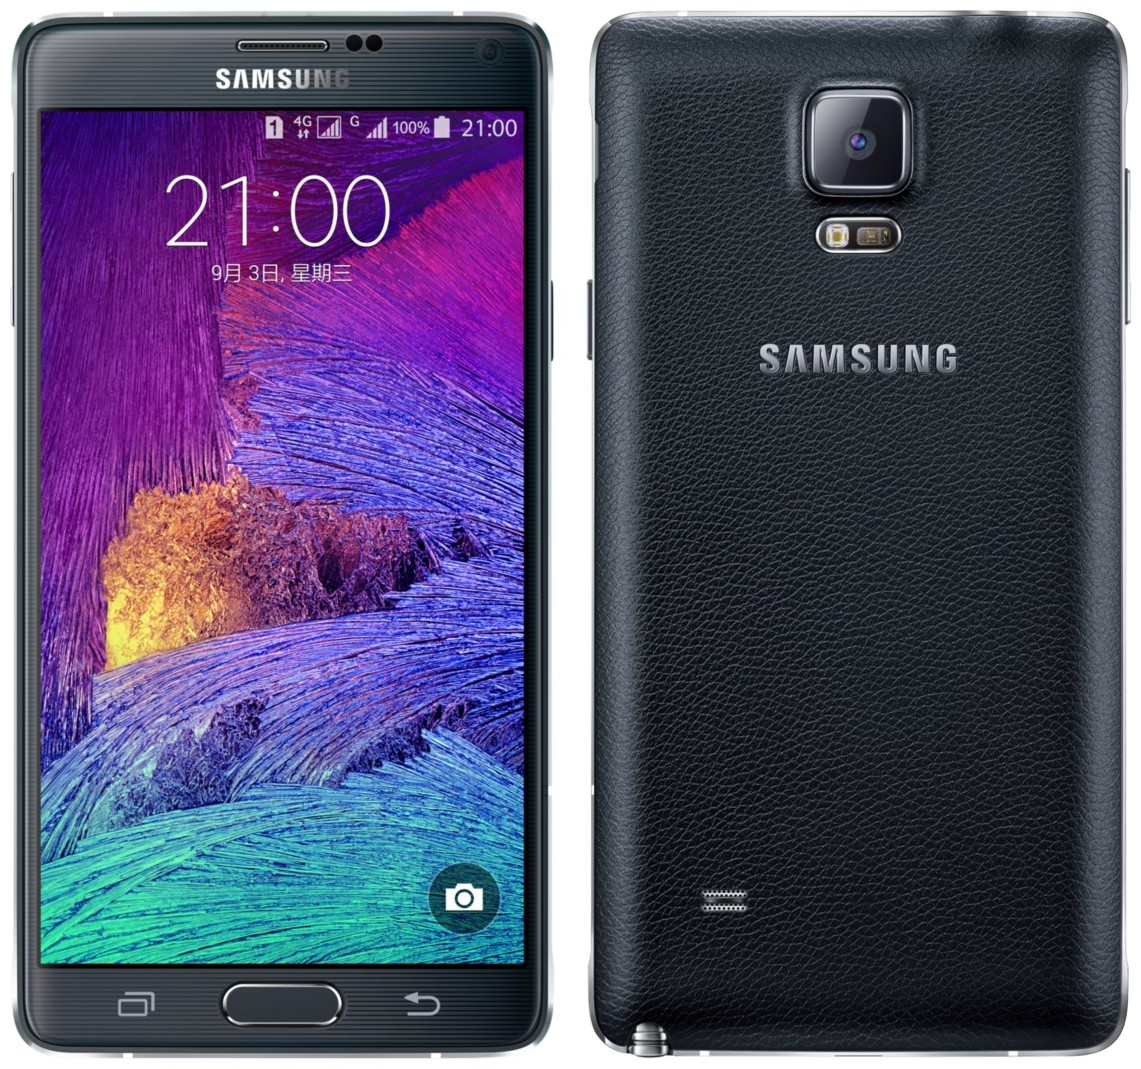 Samsung Galaxy Note 4 Duos Specs And Price Phonegg